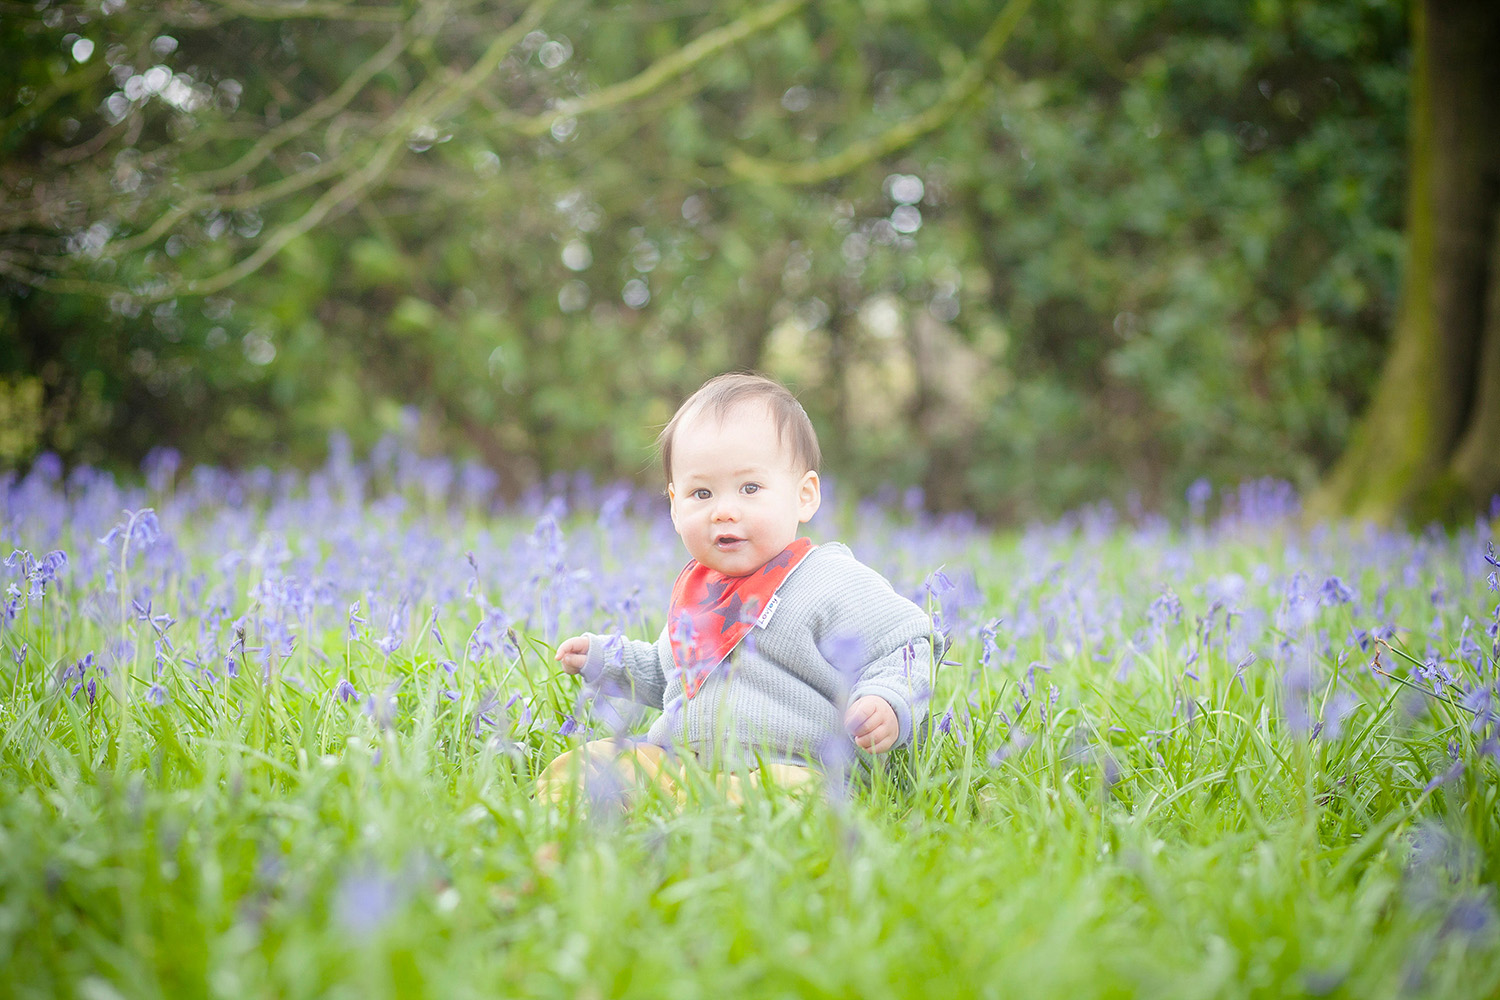 Bluebell photography photography in Lyme Park Cheshire of a toddler surrounded by Bluebells at Lyme Park